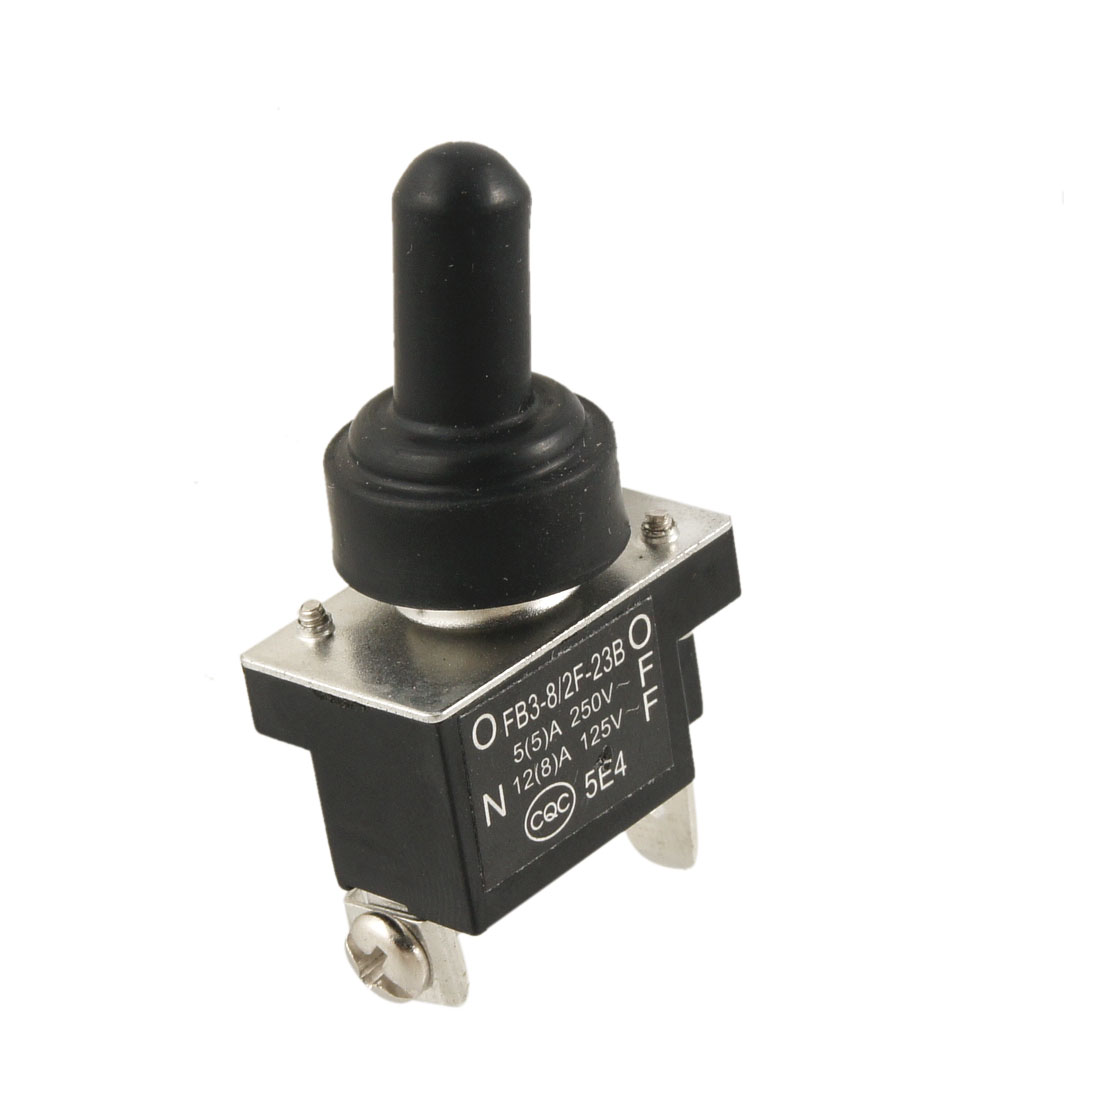 FB3-8/2F-23B AC 250V 5A 125V 12A Toggle Switch for Angle Grinder